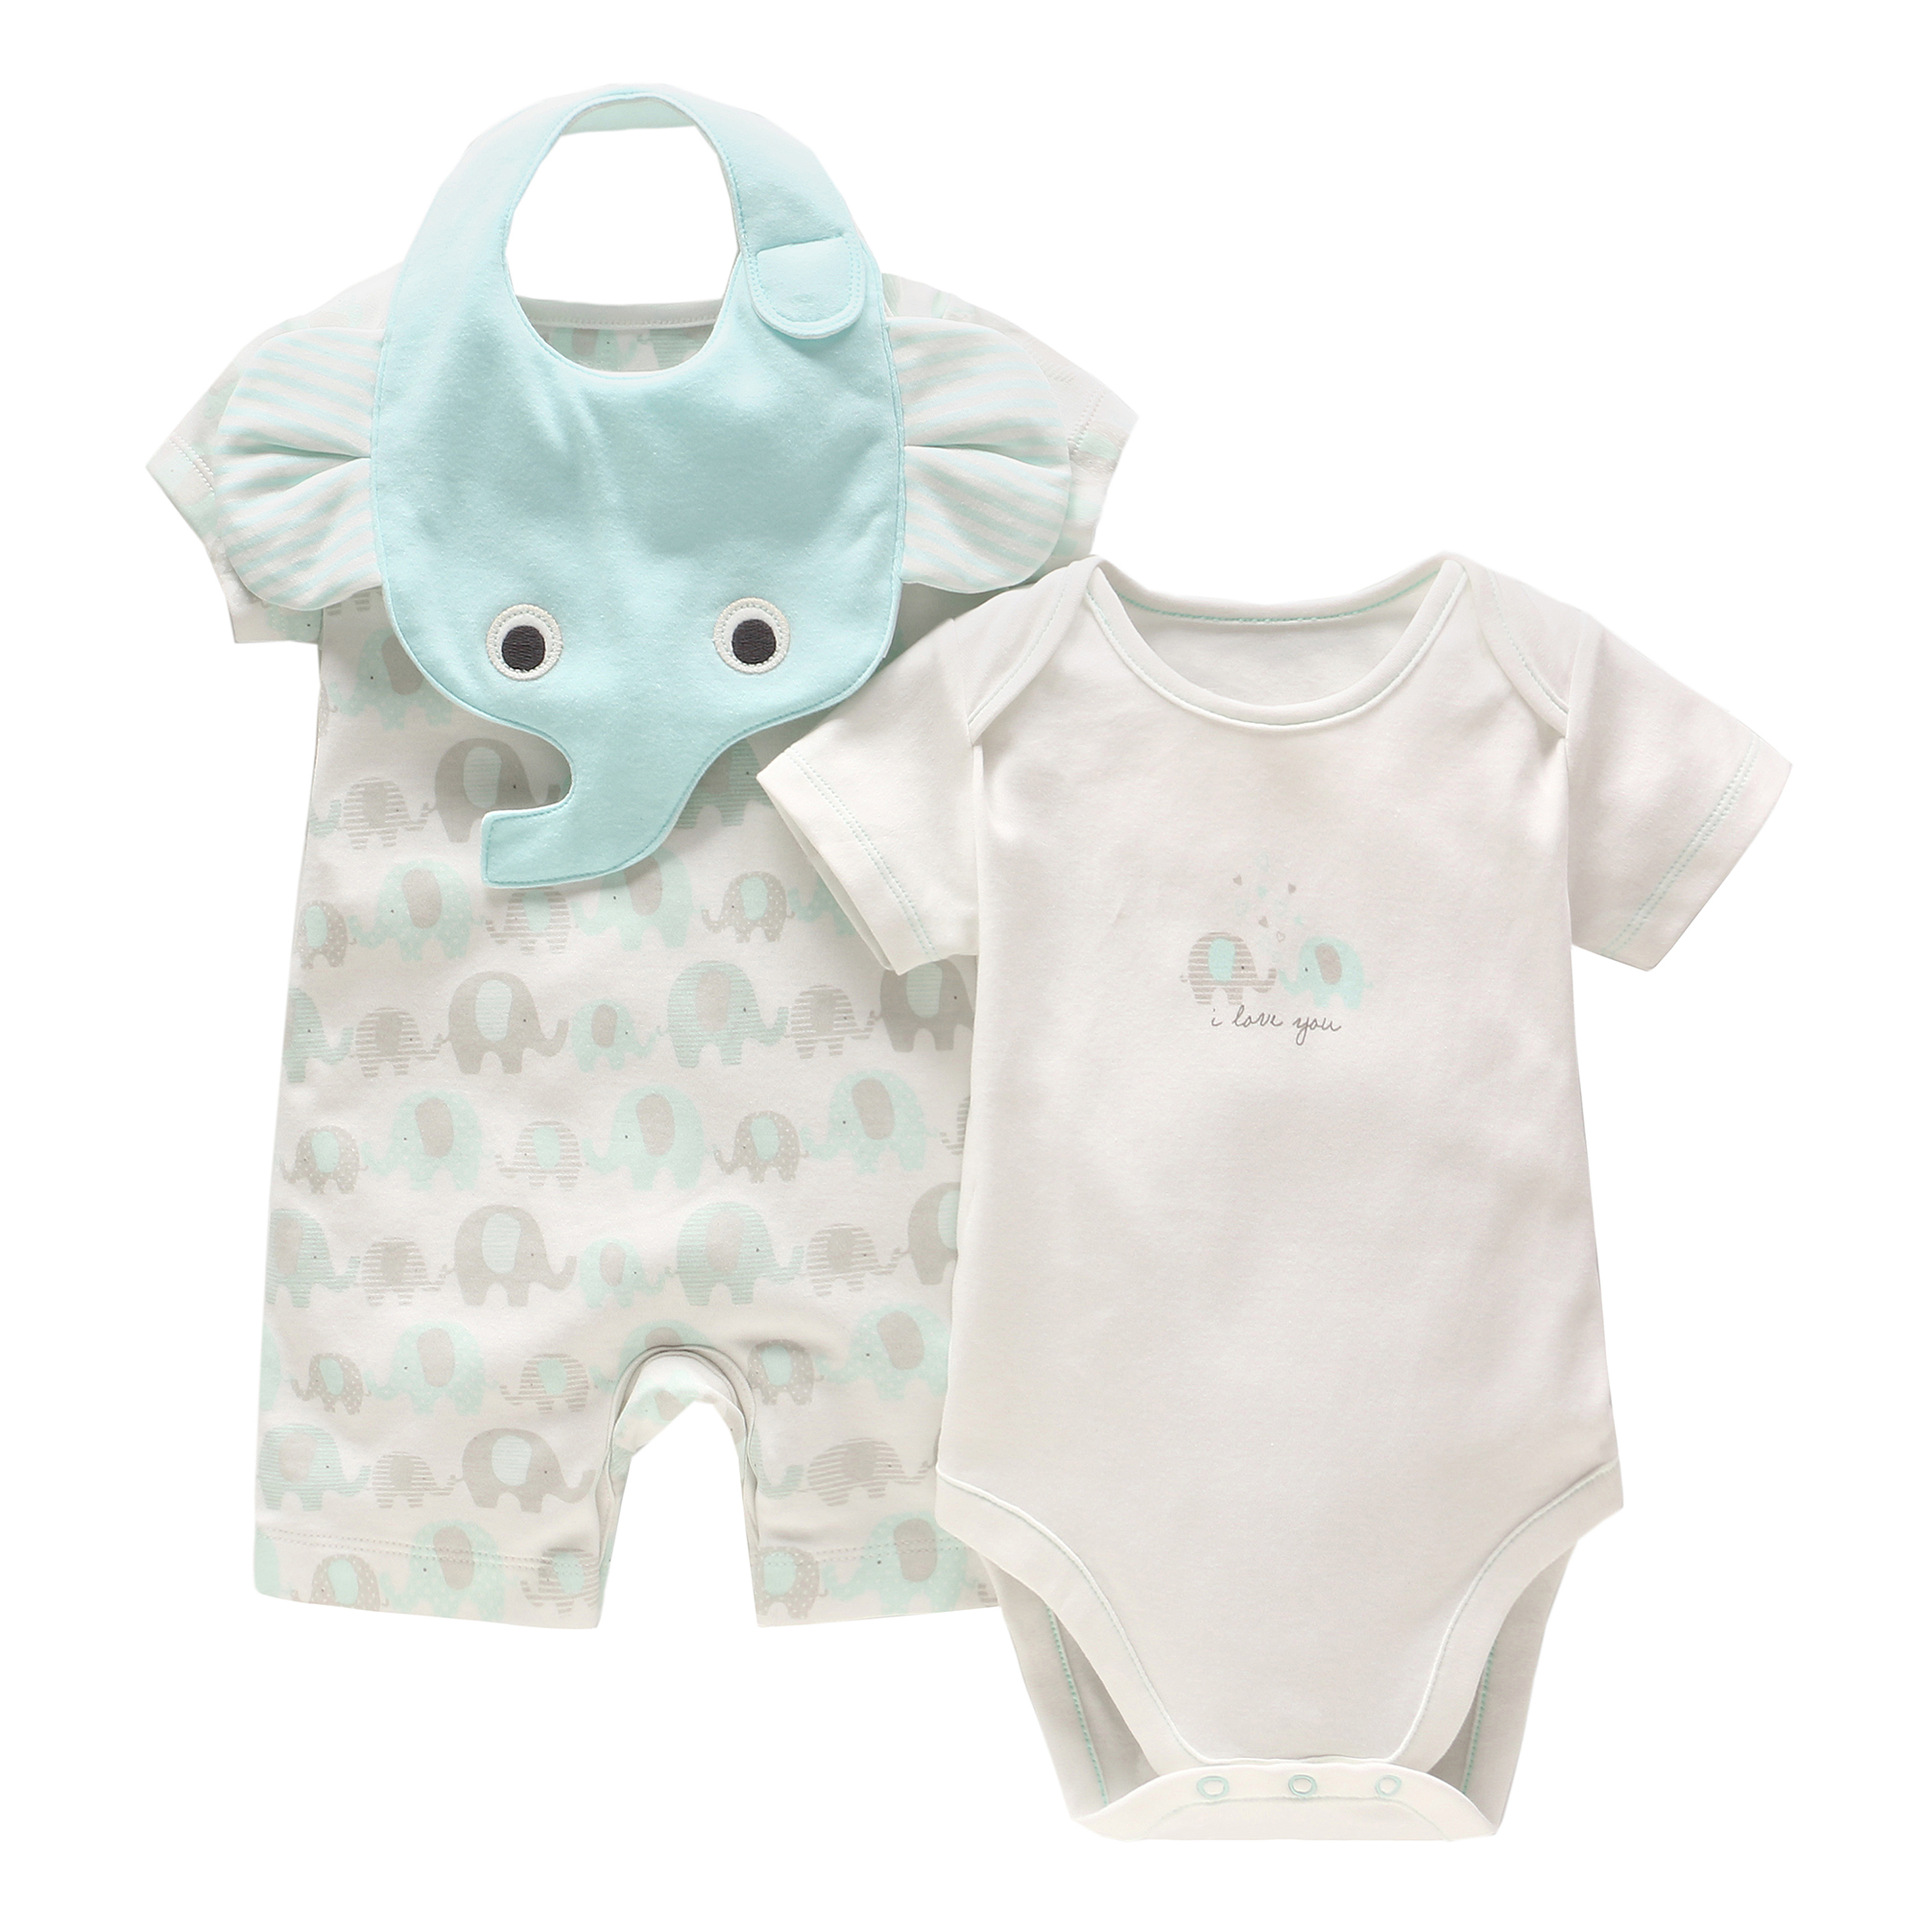 New Baby Boy Clothing Set Summer Baby Cotton Bodysuit